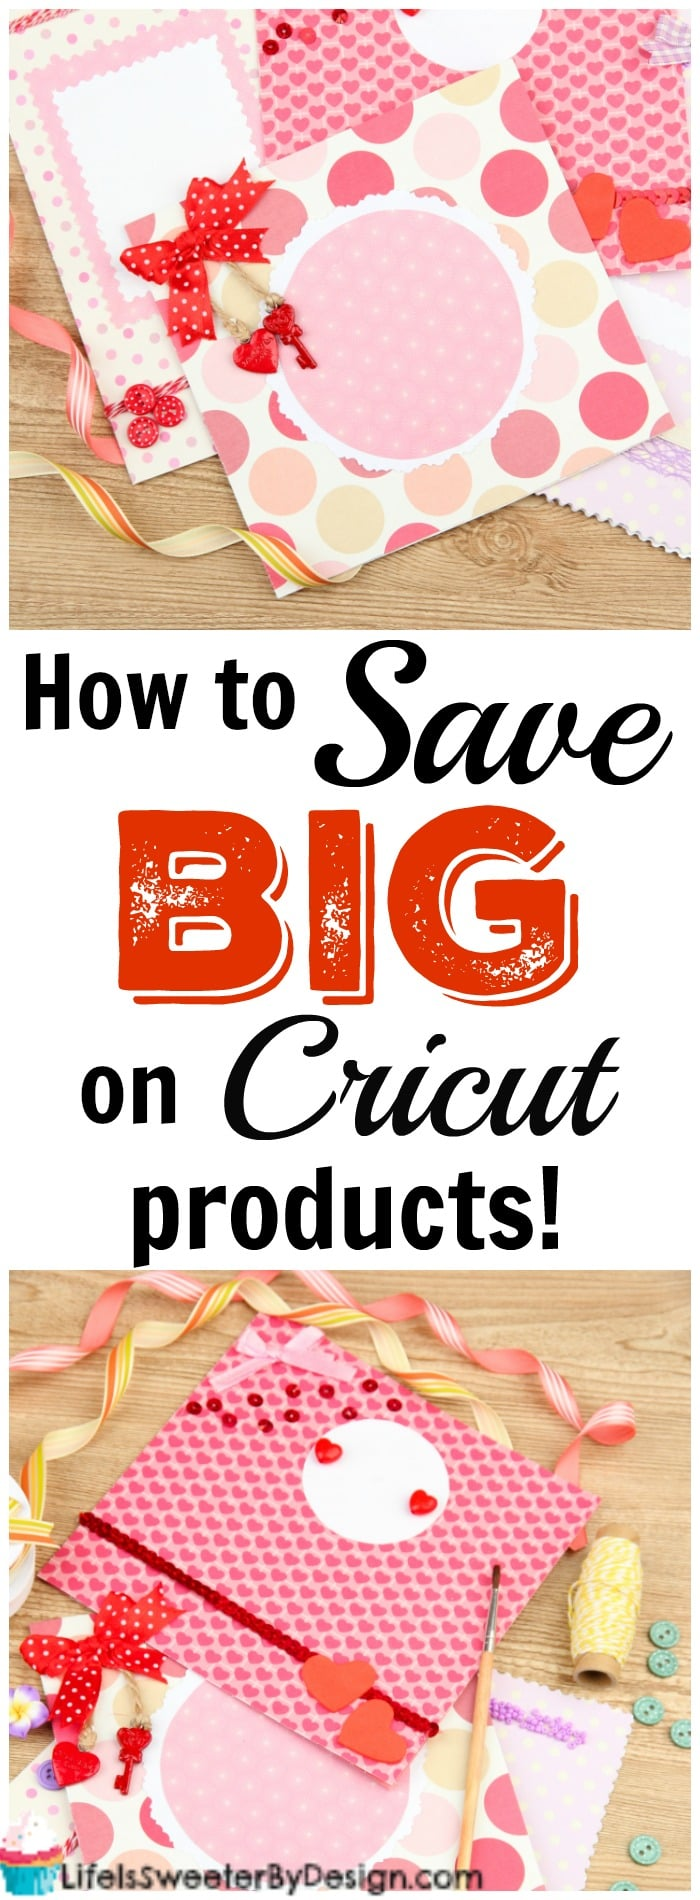 My Favorite Ways to Save Big on Cricut Products - Life is Sweeter By